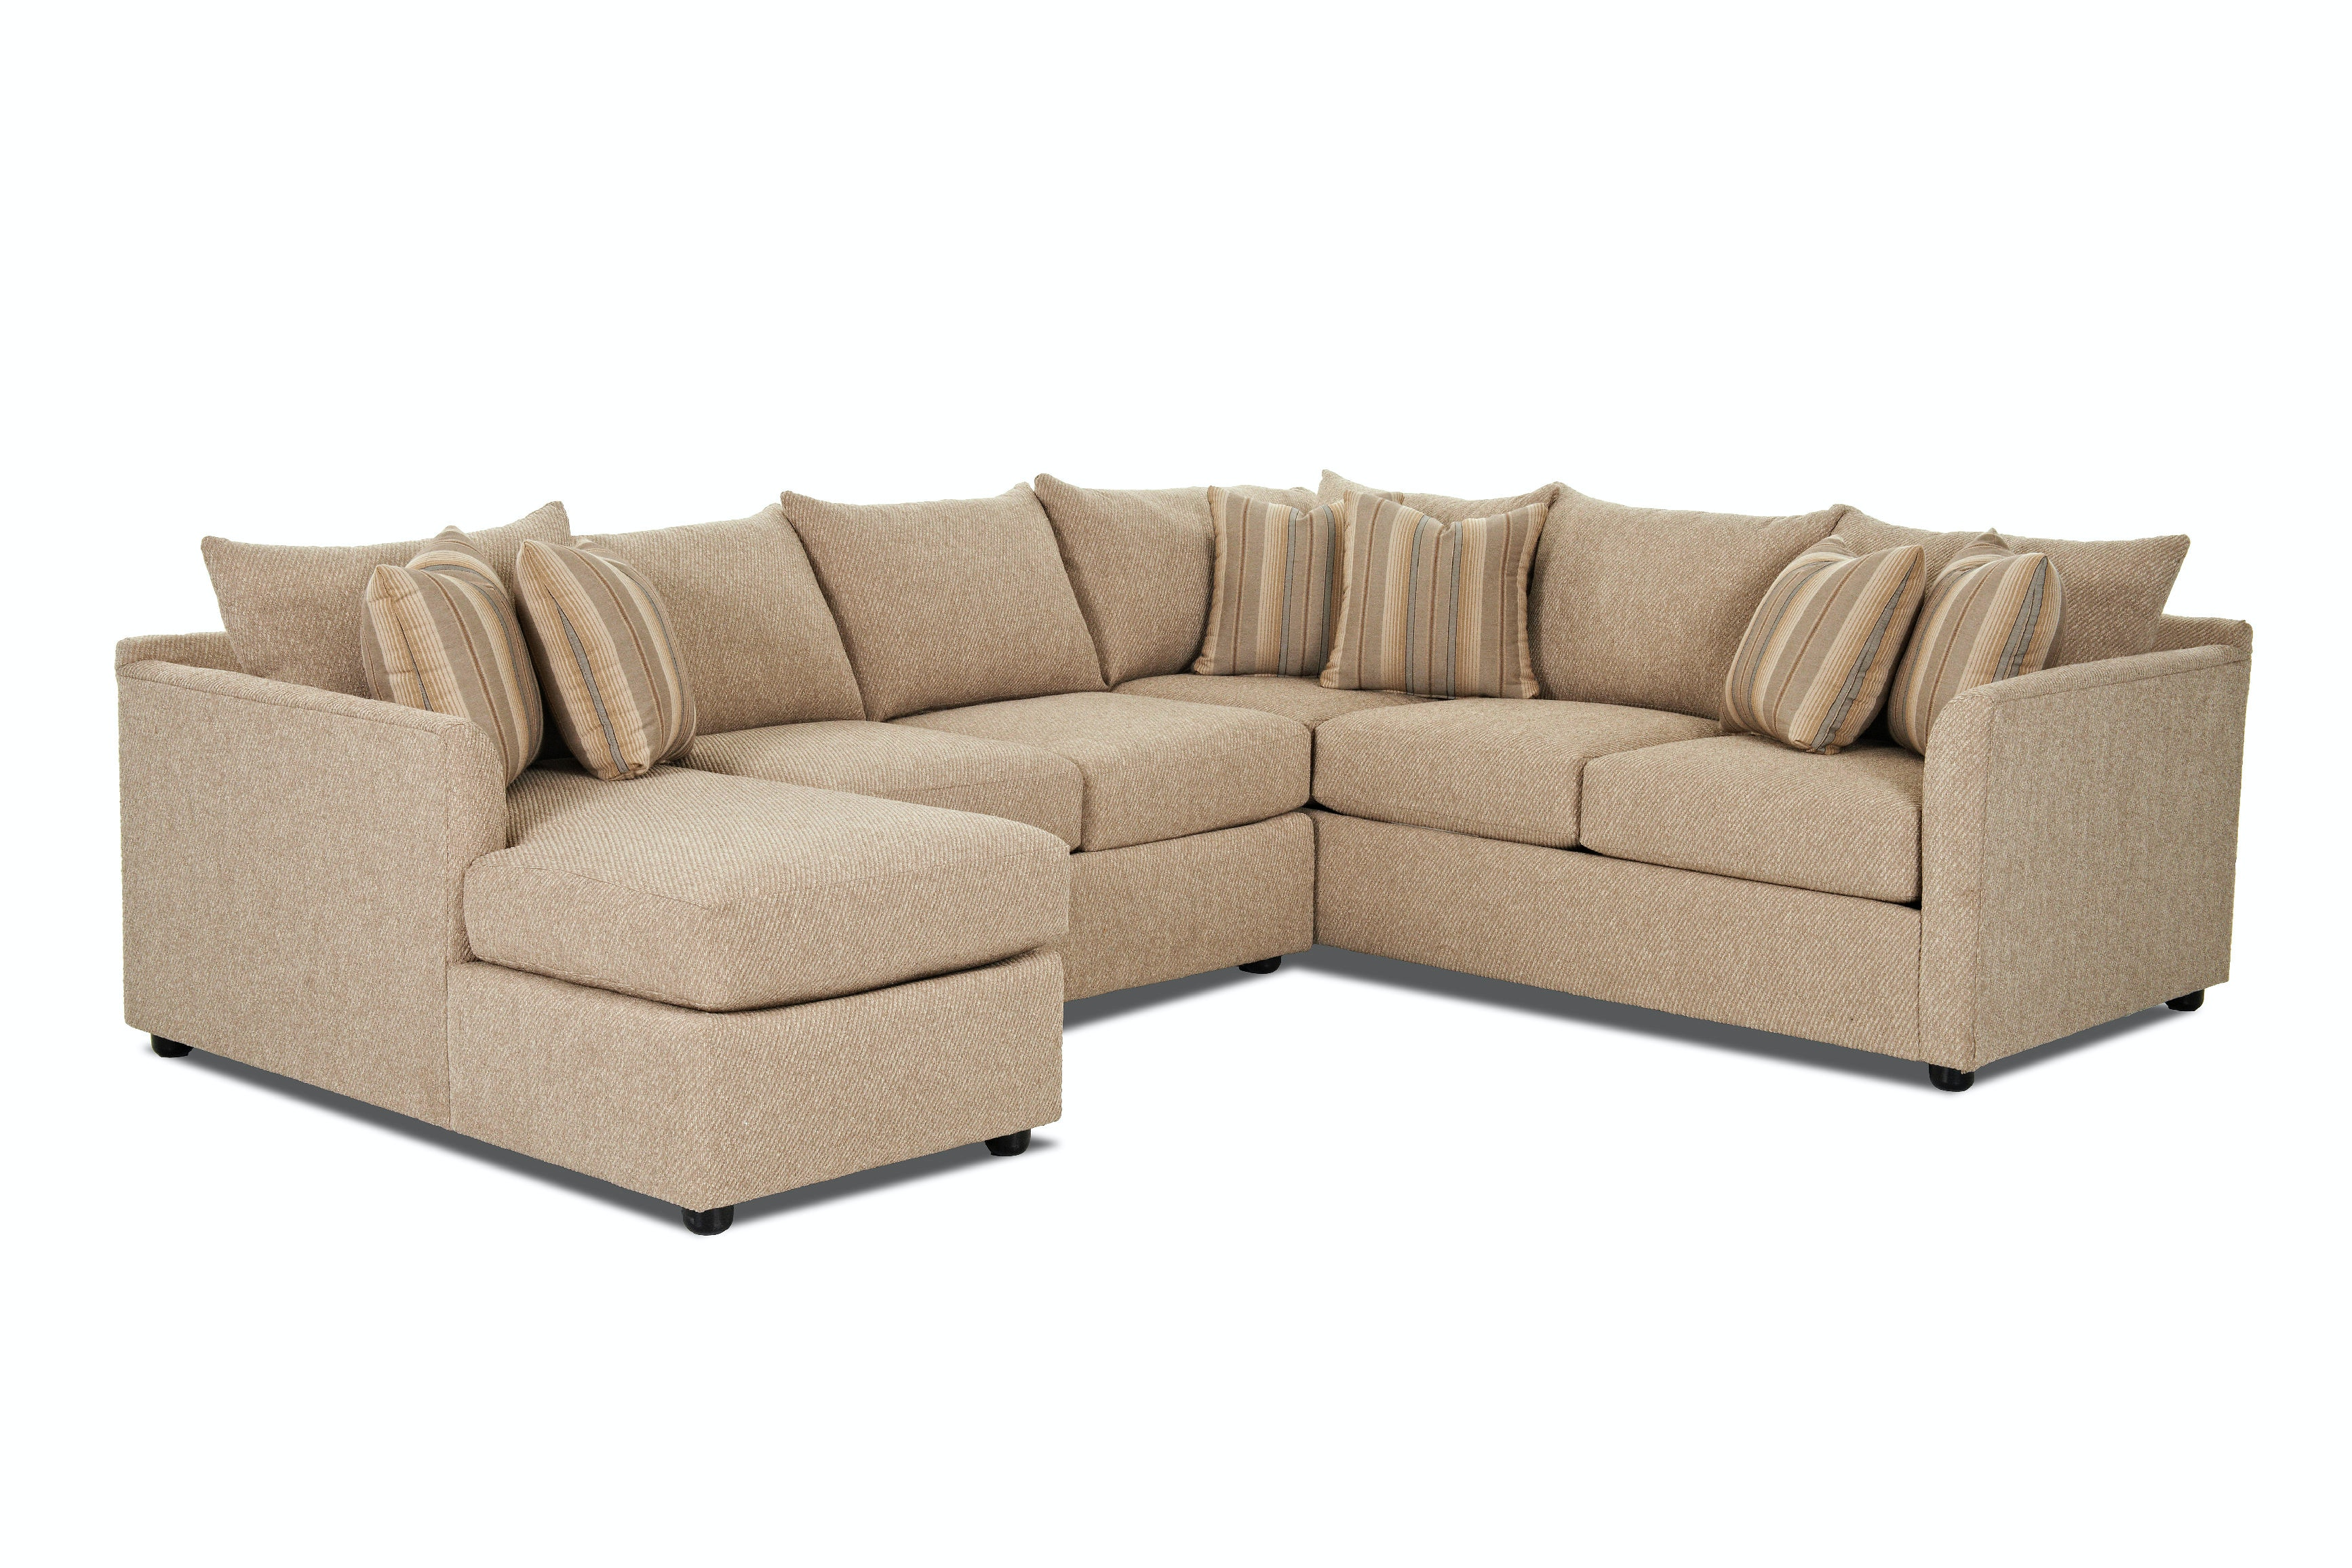 Klaussner Living Room Atlanta Sectional K27800L S   Smith Village Home  Furniture   Jacobus And York, PA